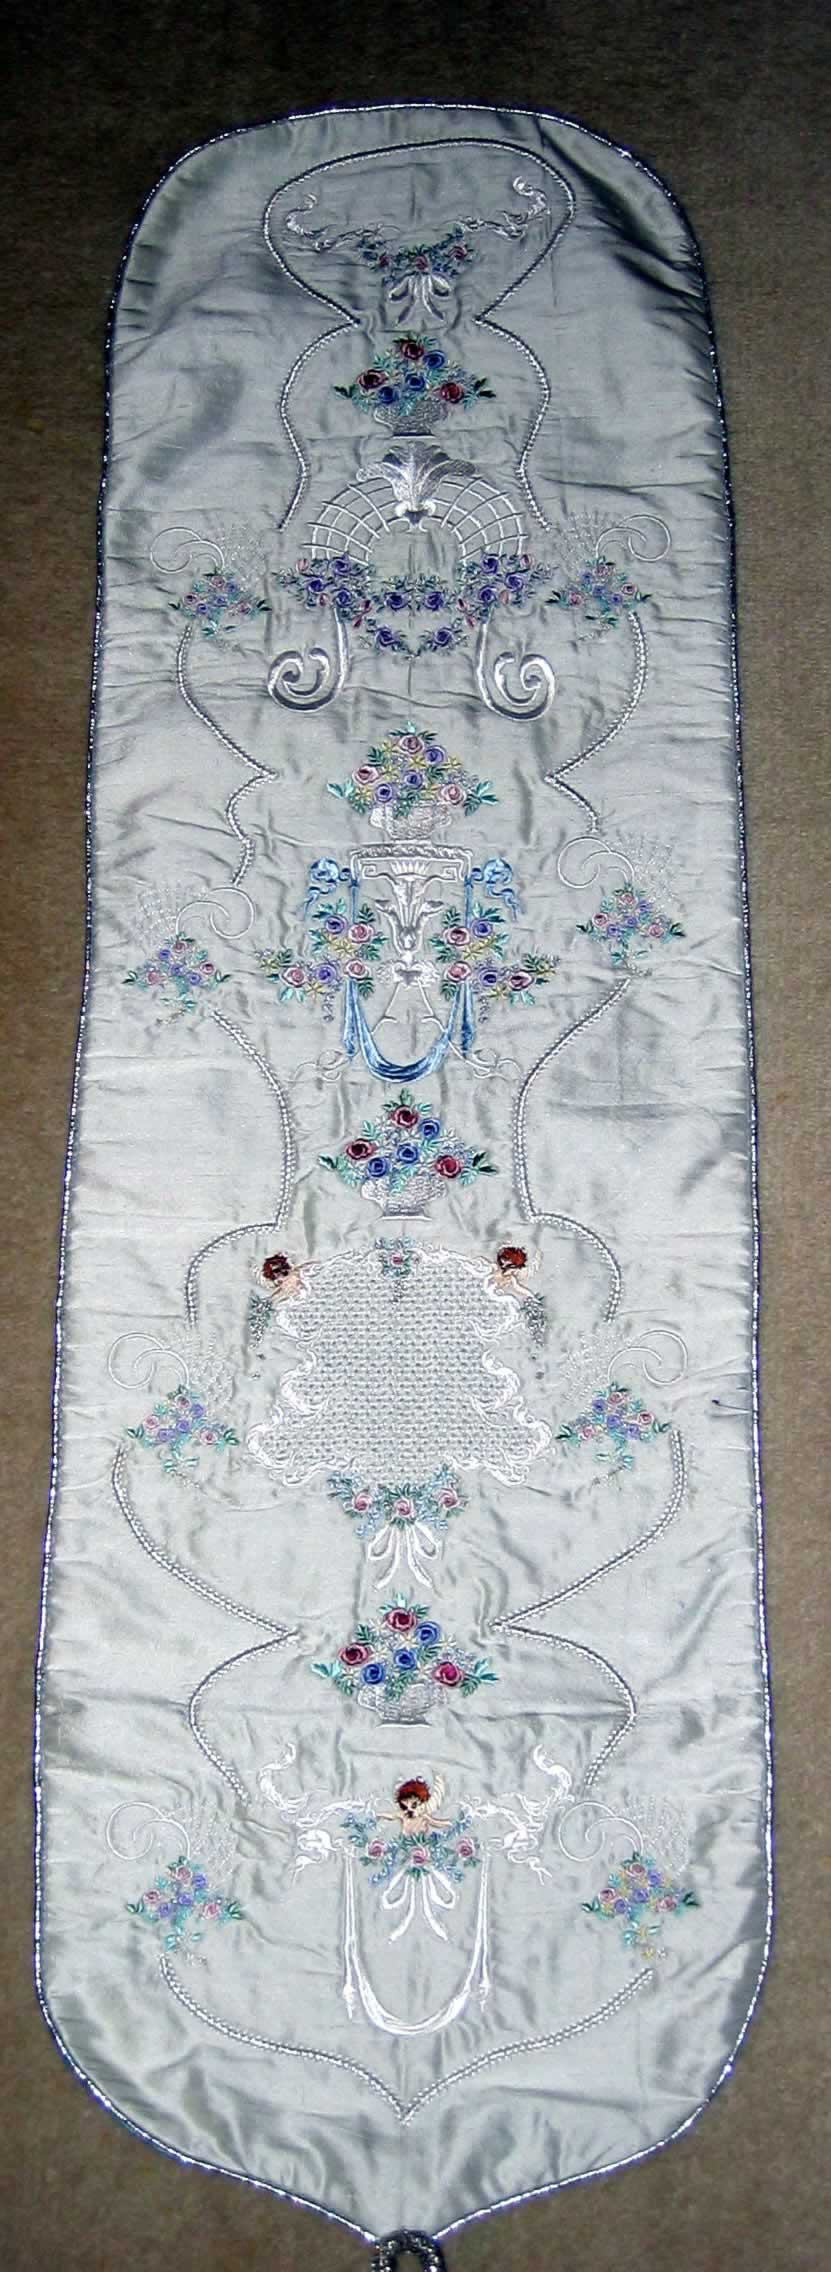 Classical Machine Embroidery Designs